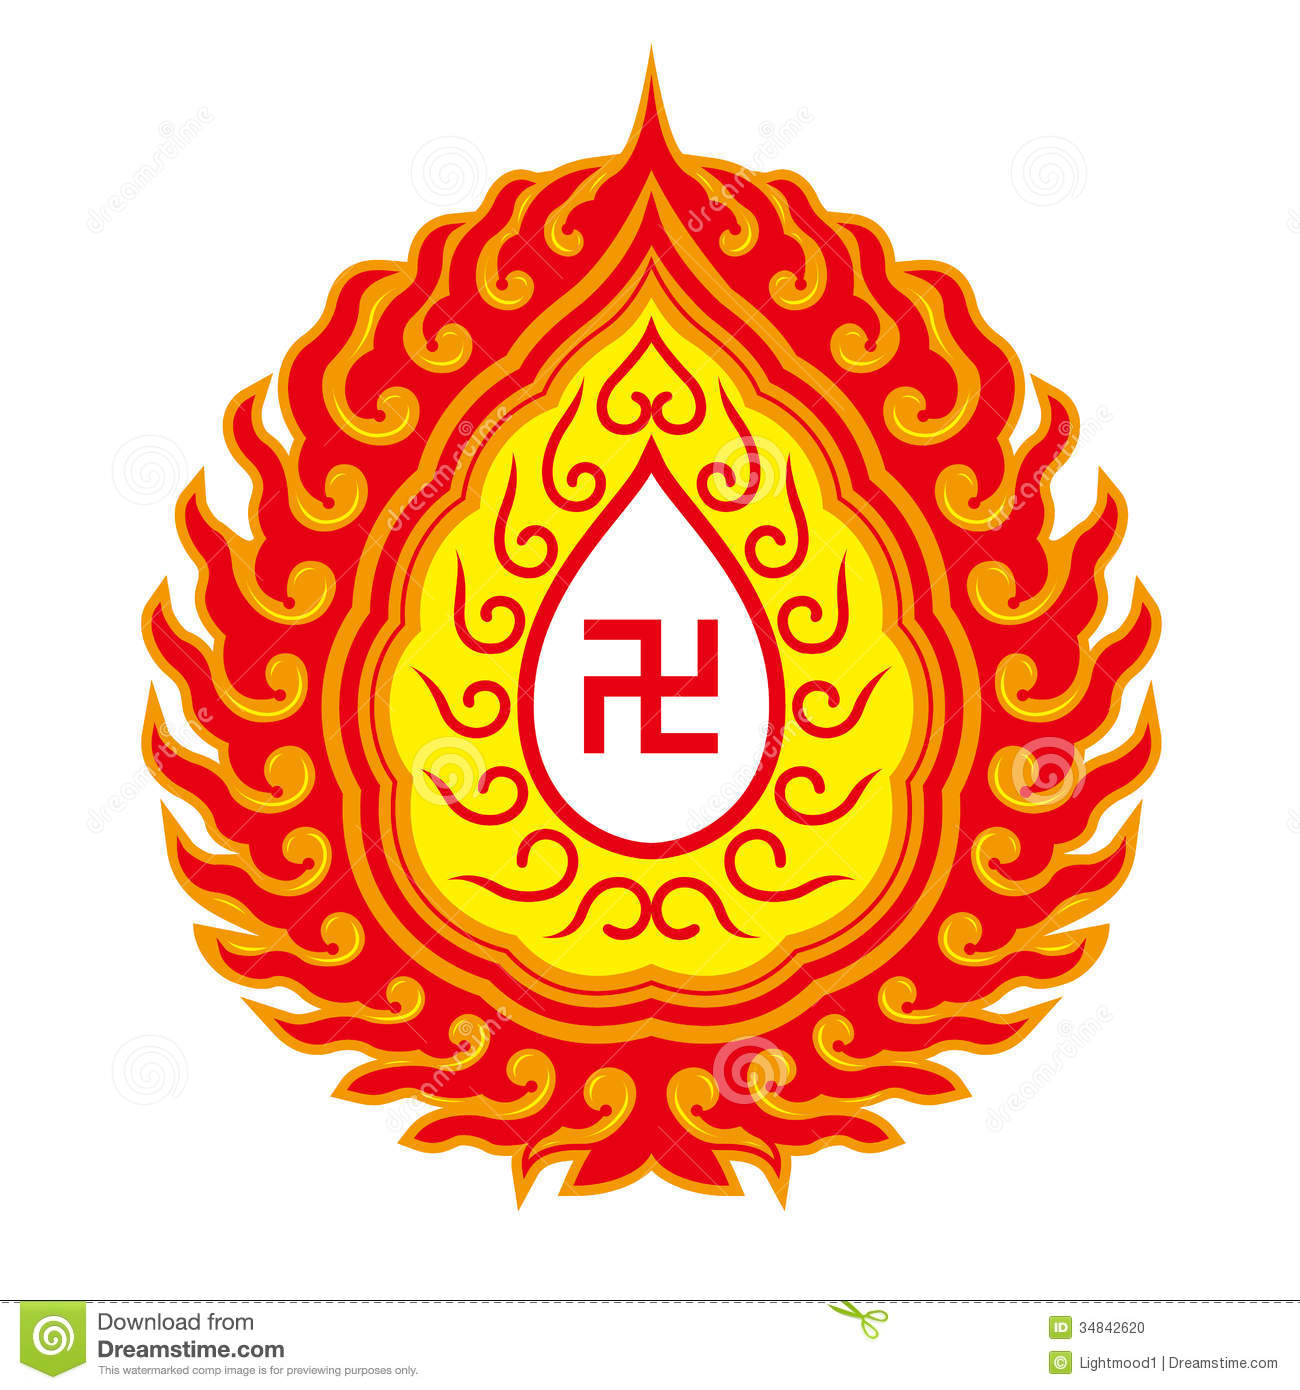 Symbole de svastika mod le bouddhiste de tradition photo stock image 34842620 - Symbole bouddhiste om ...